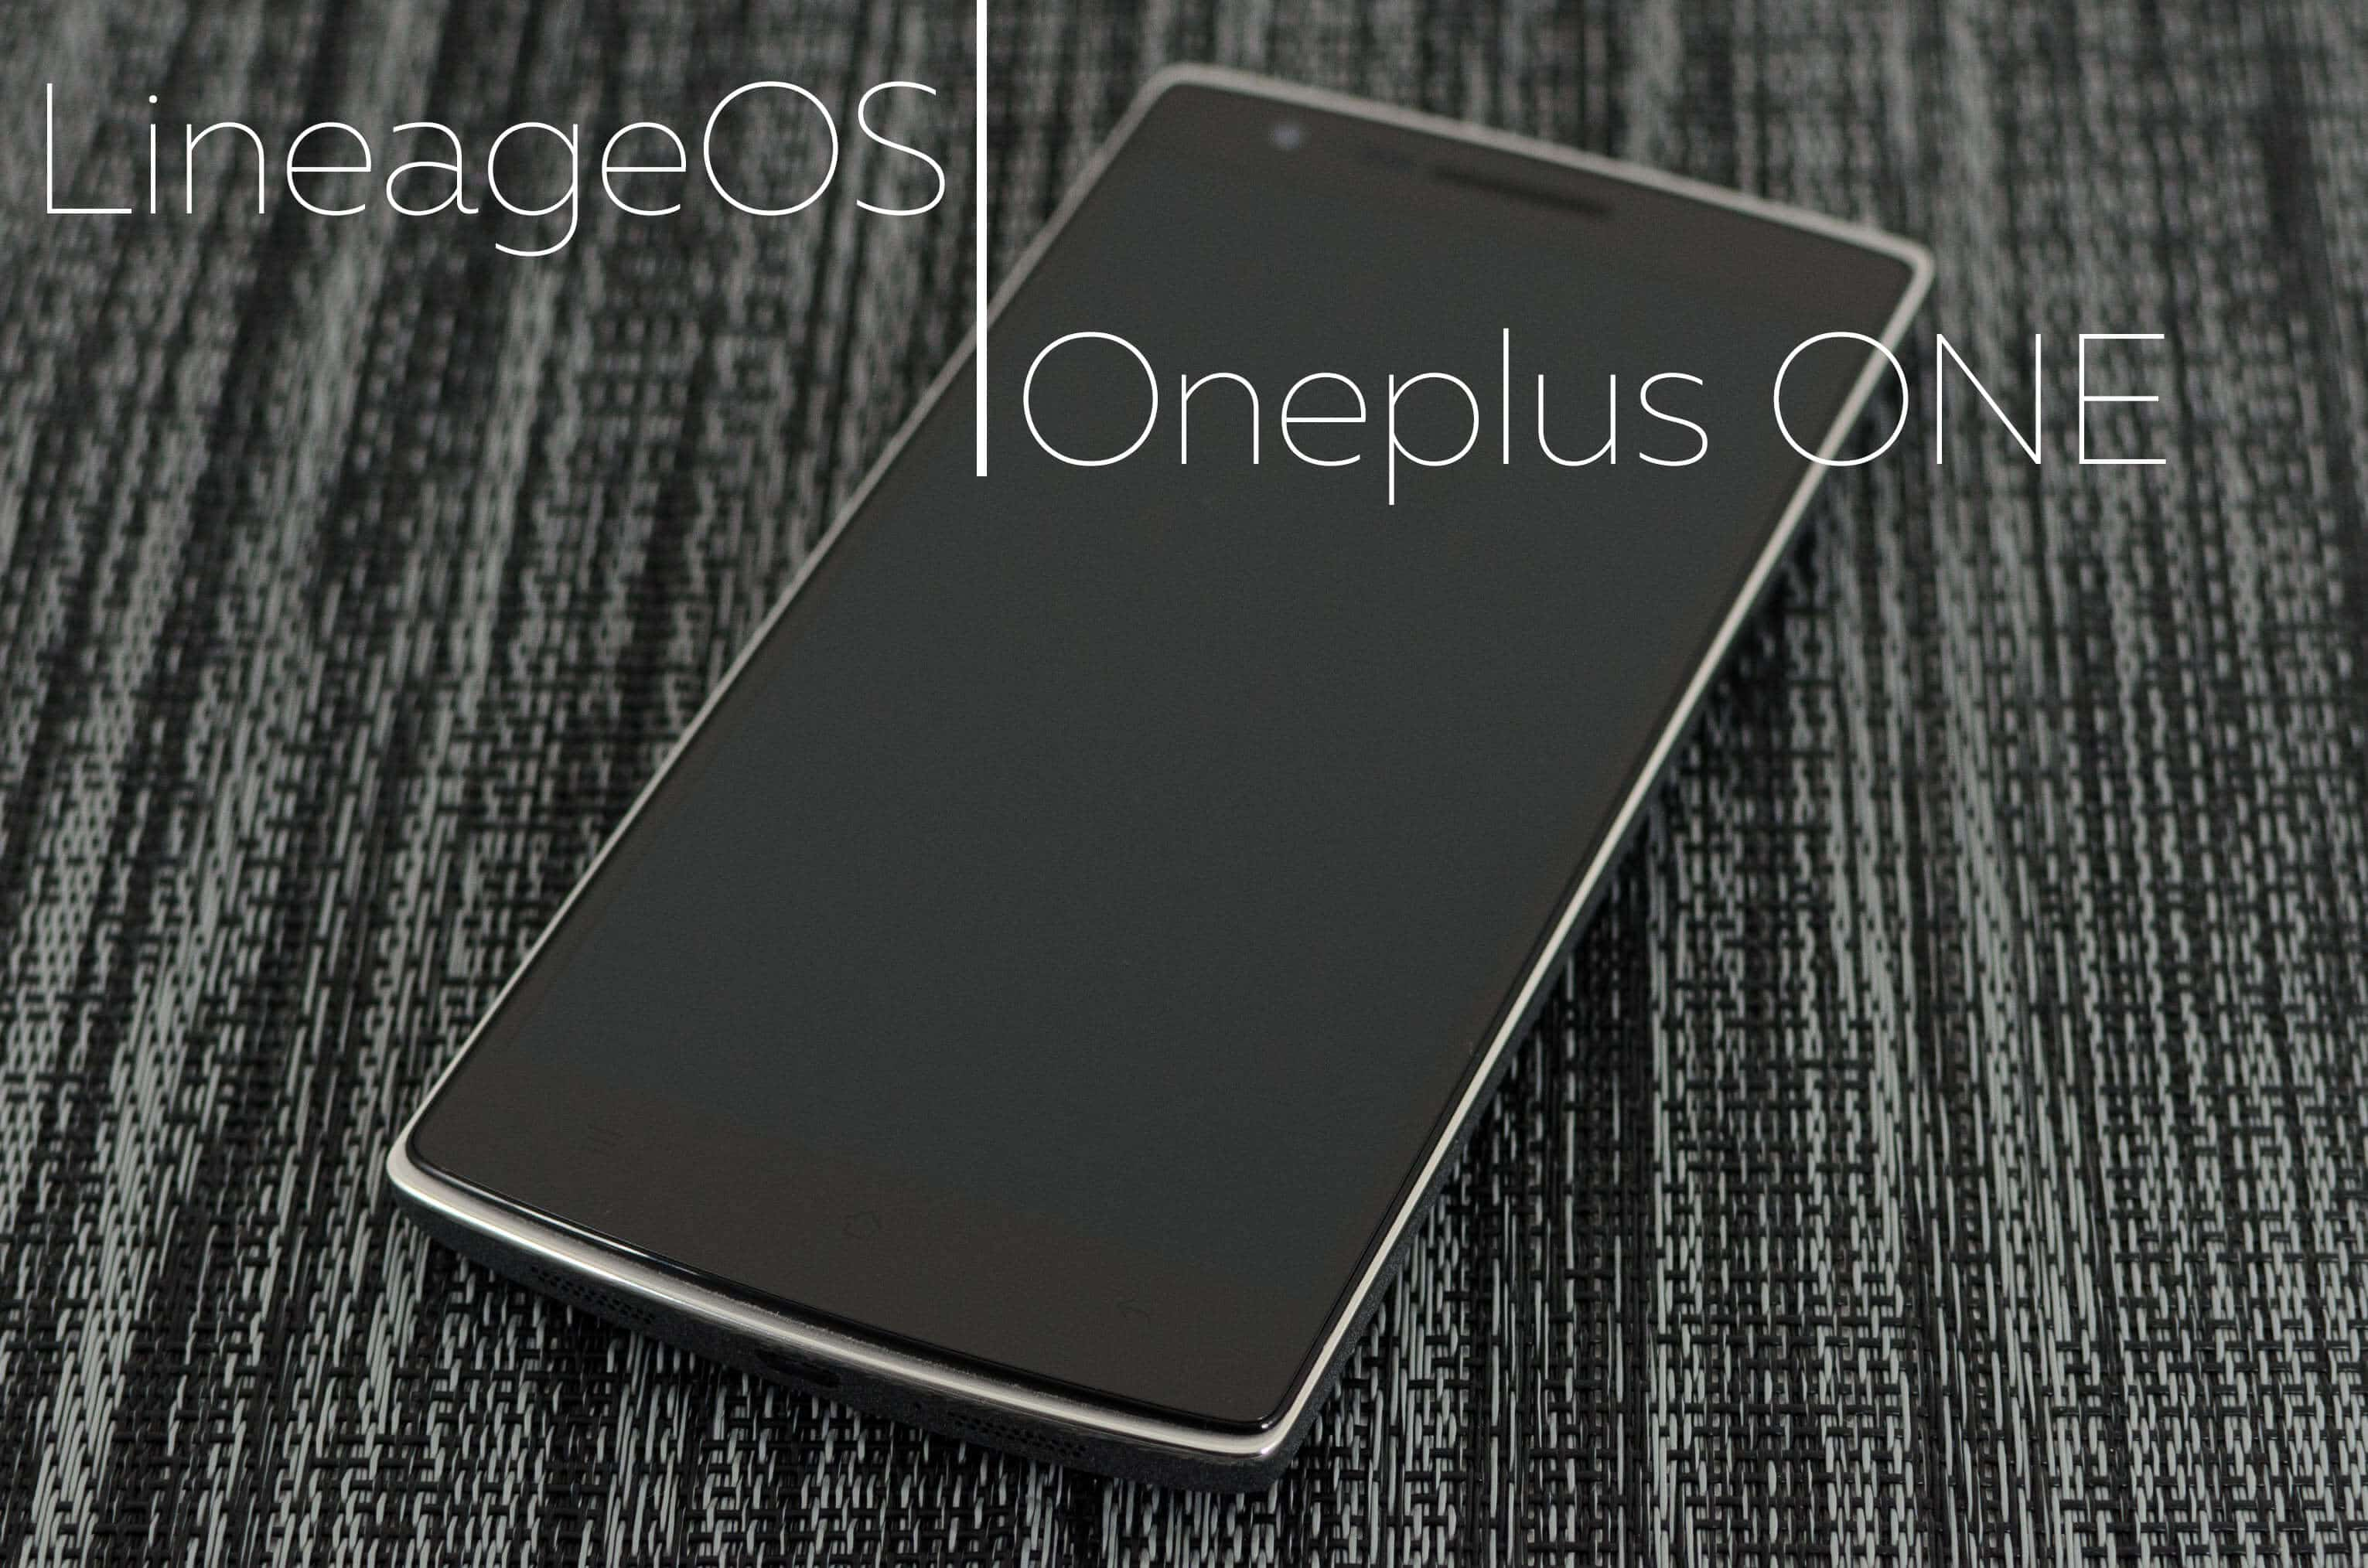 download Install LineageOS on Oneplus one